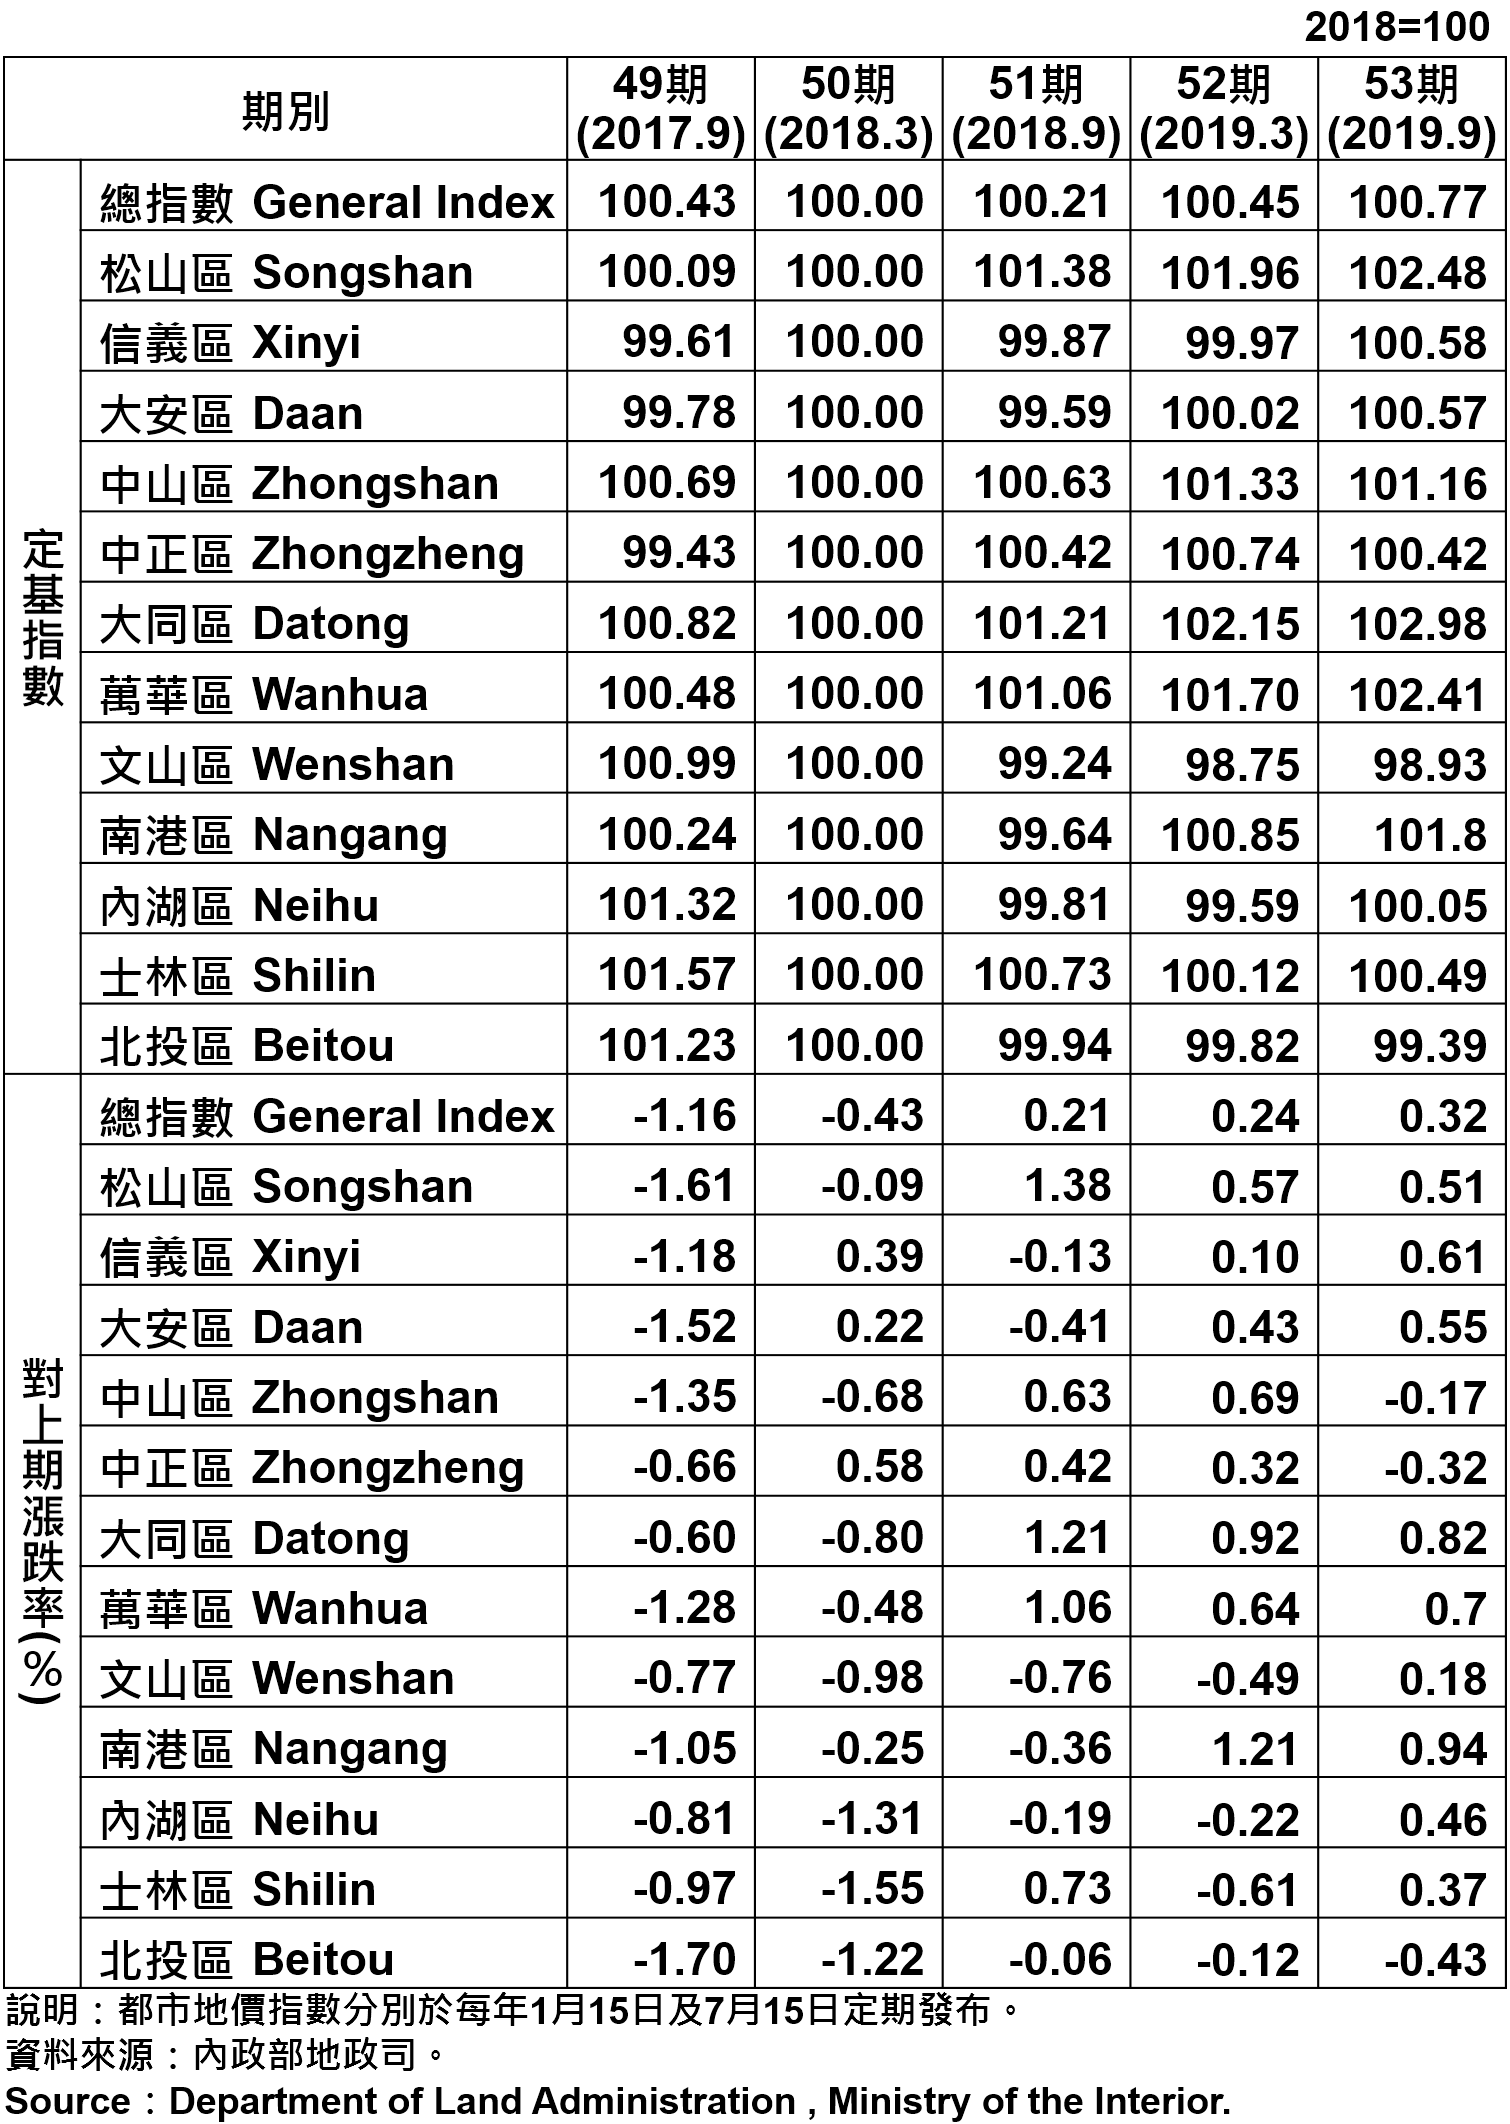 臺北市都市地價指數分區表—53期 Taipei's Urban Land Price Indexes by Districts—53th